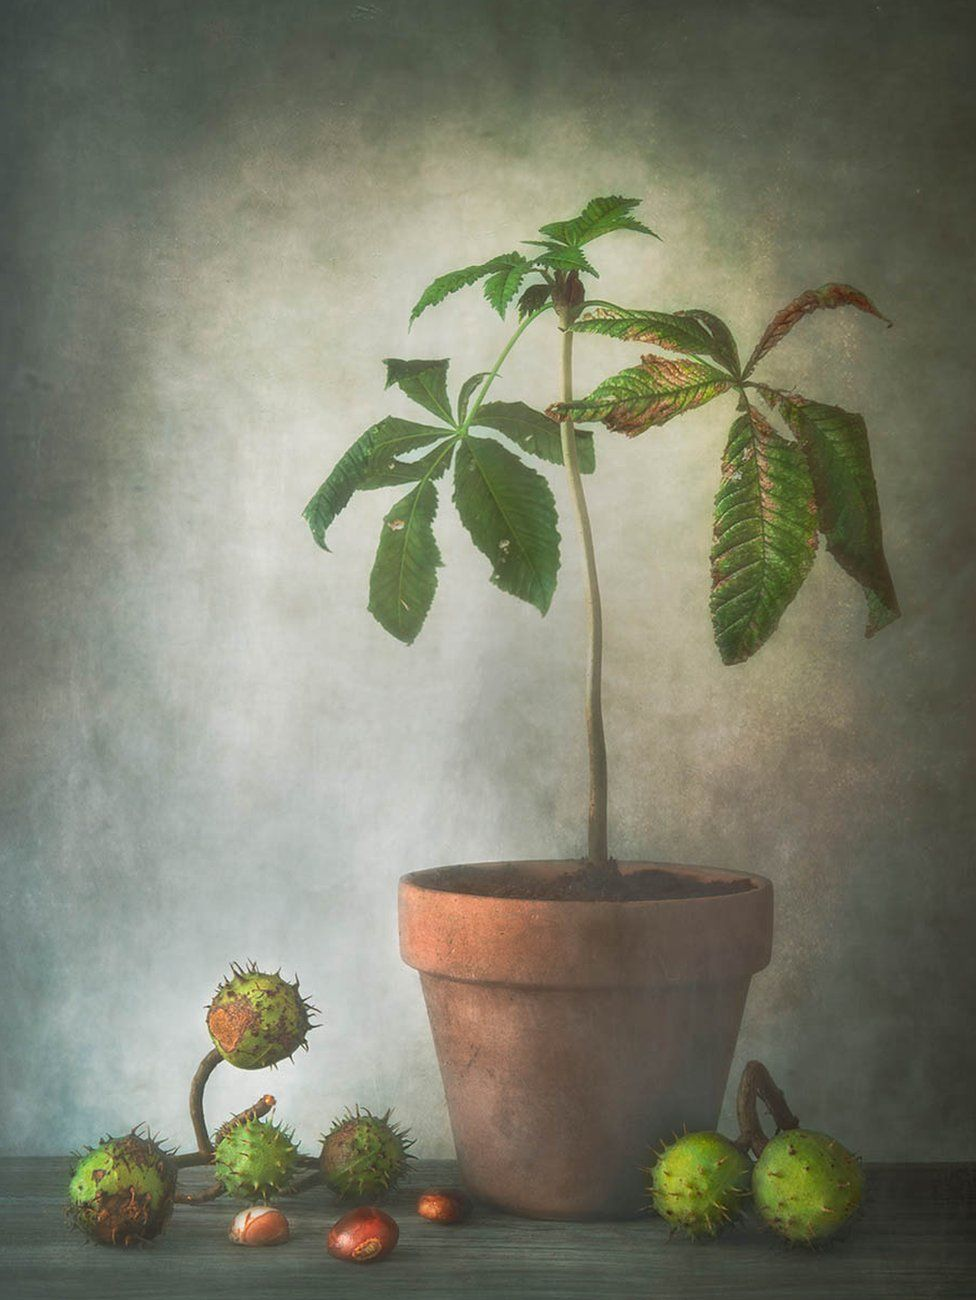 A horse chestnut plant in a pot with conkers strewn on a table